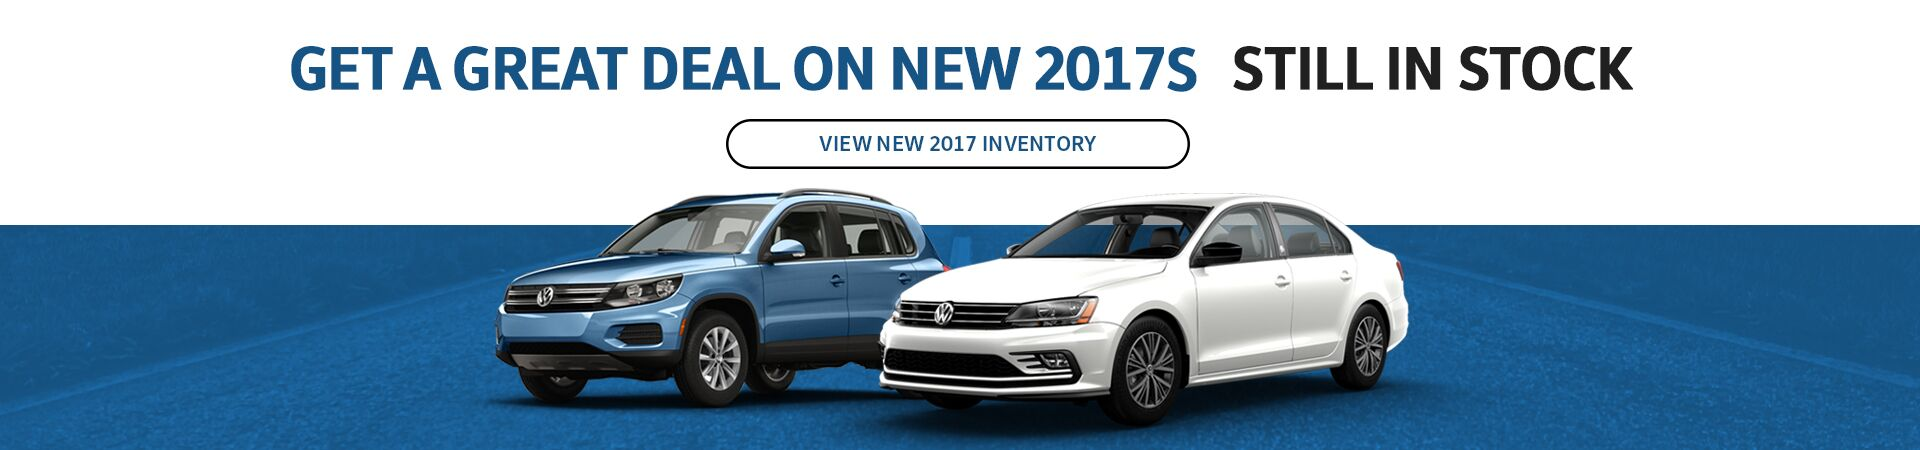 Great 2017 Deals!